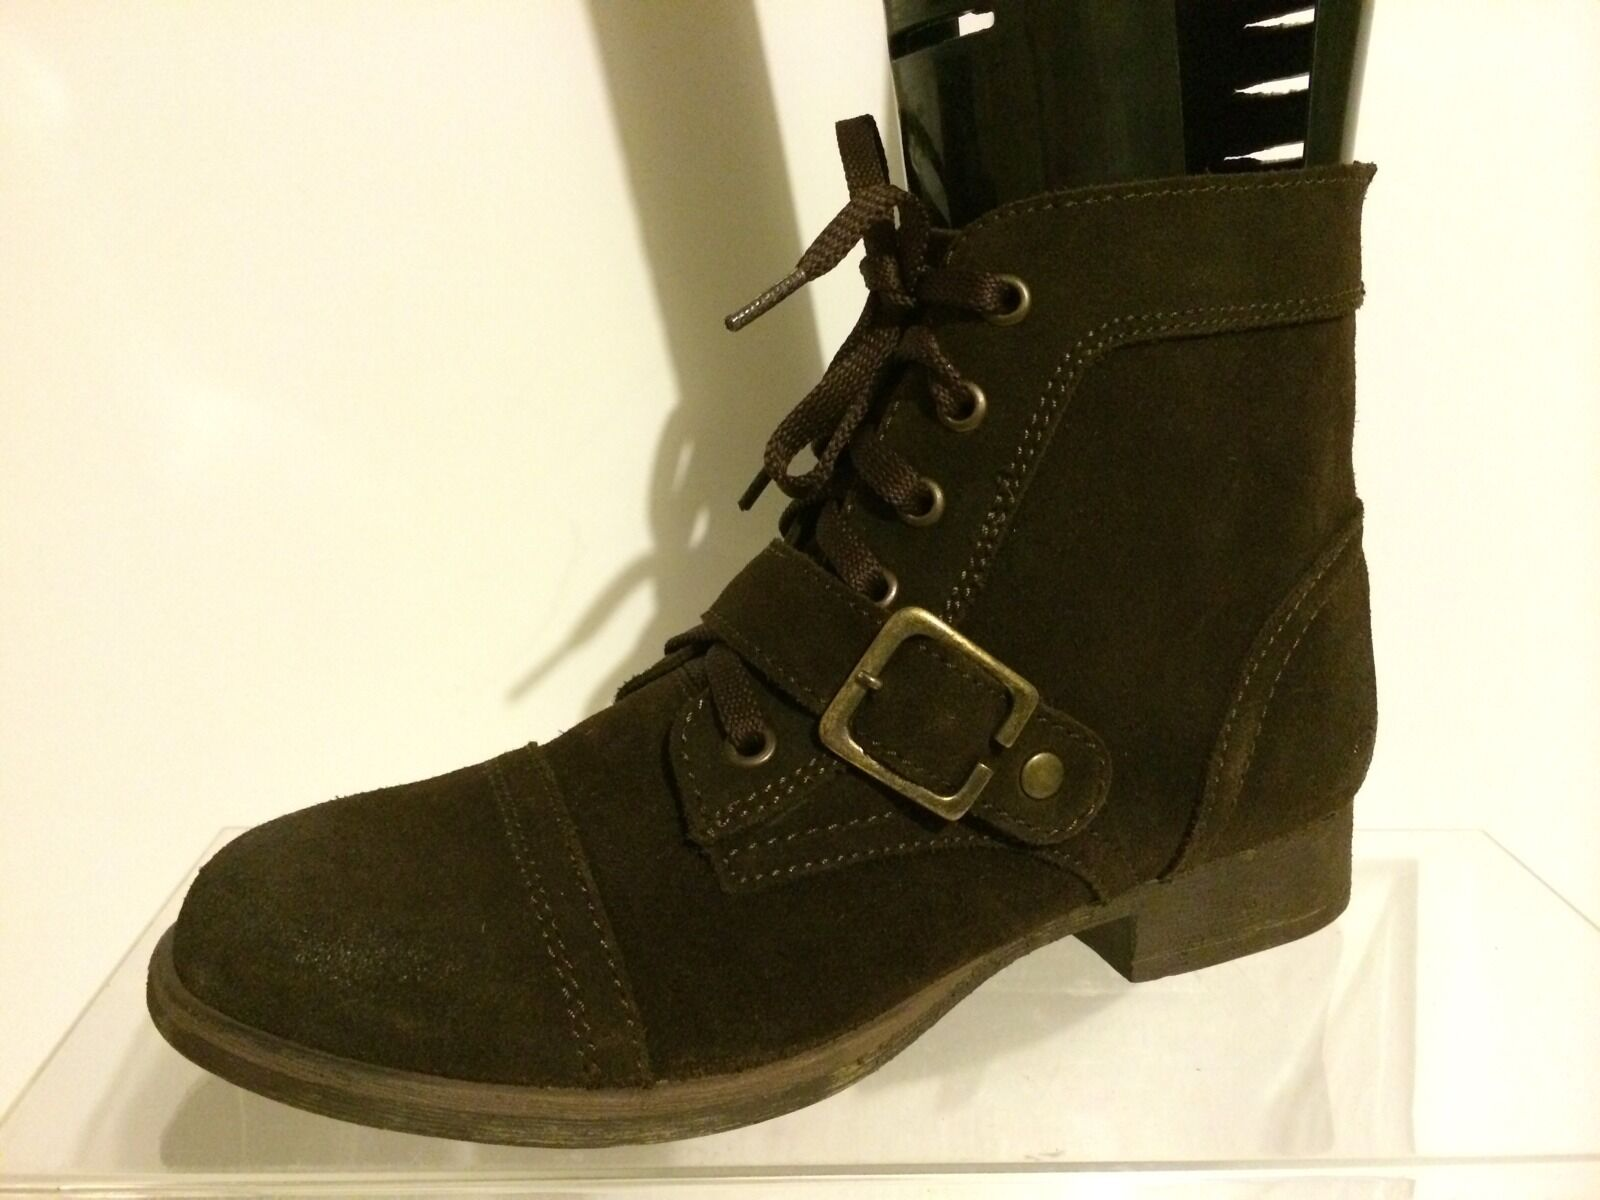 Zigi Soho Womens Brown Leather/ Suede Boots 7 M